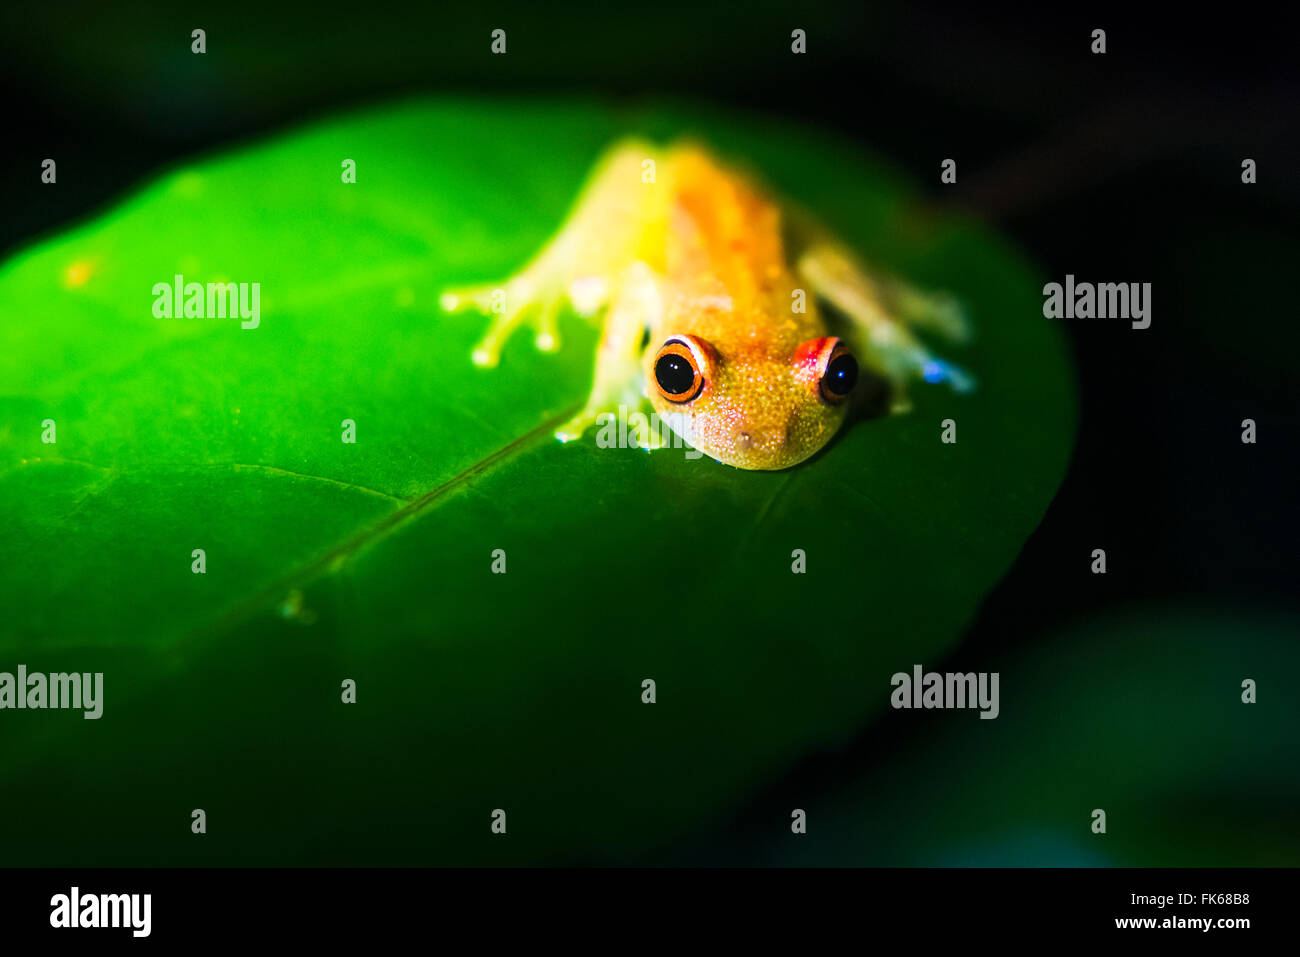 Frog in the Amazon Rainforest at night, Coca, Ecuador, South America - Stock Image